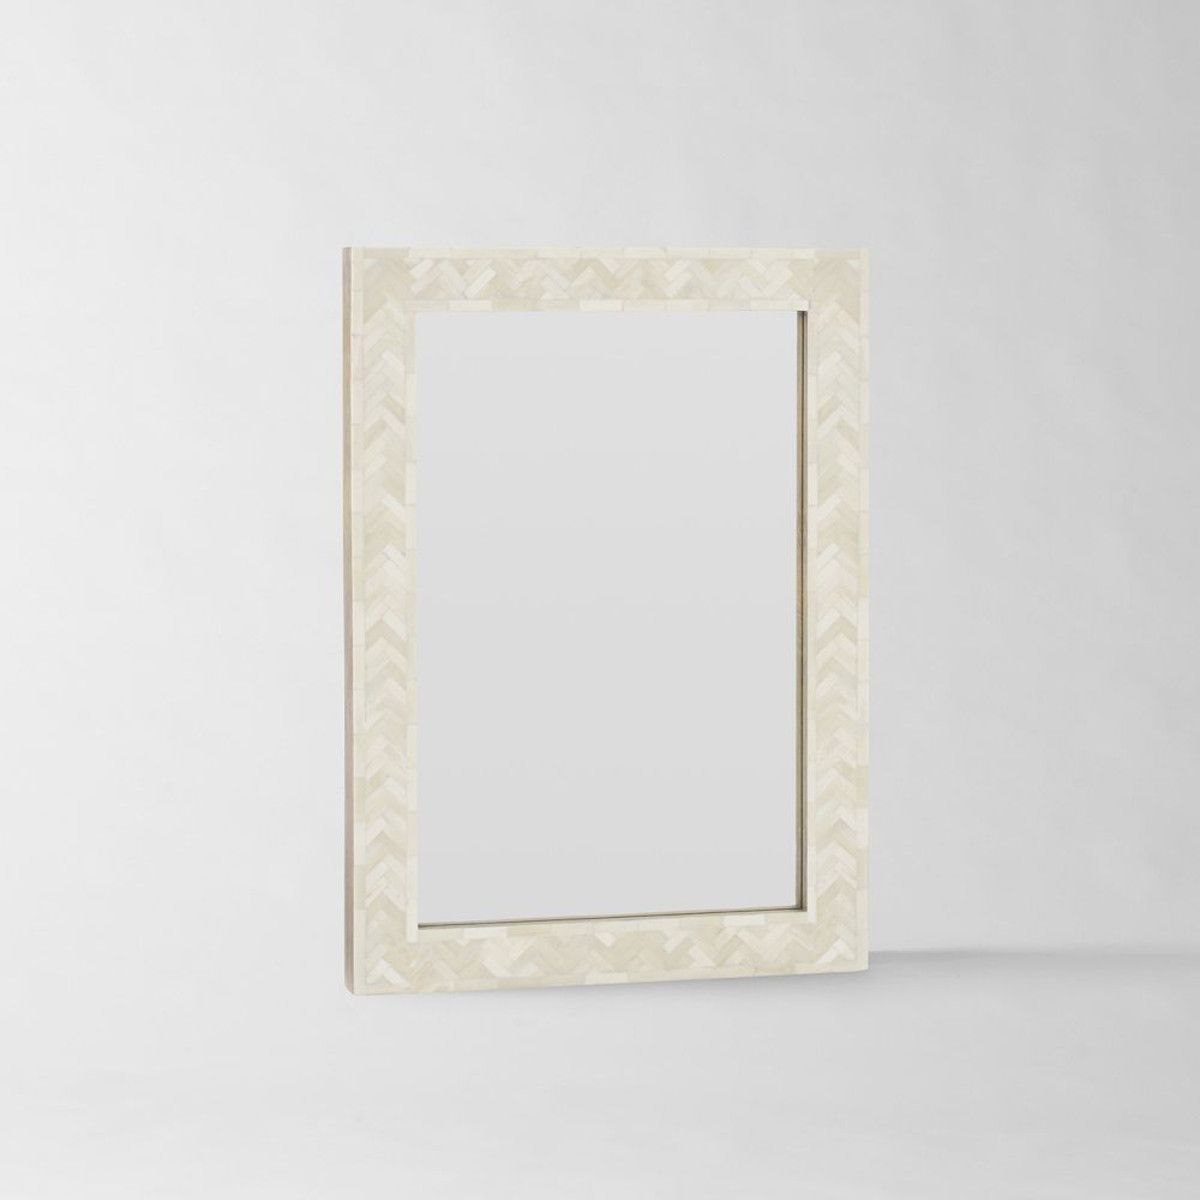 Parsons wall mirror bone inlay 61cm x 86cm west elm 359 parsons wall mirror bone inlay 61cm x 86cm west elm 359 amipublicfo Image collections